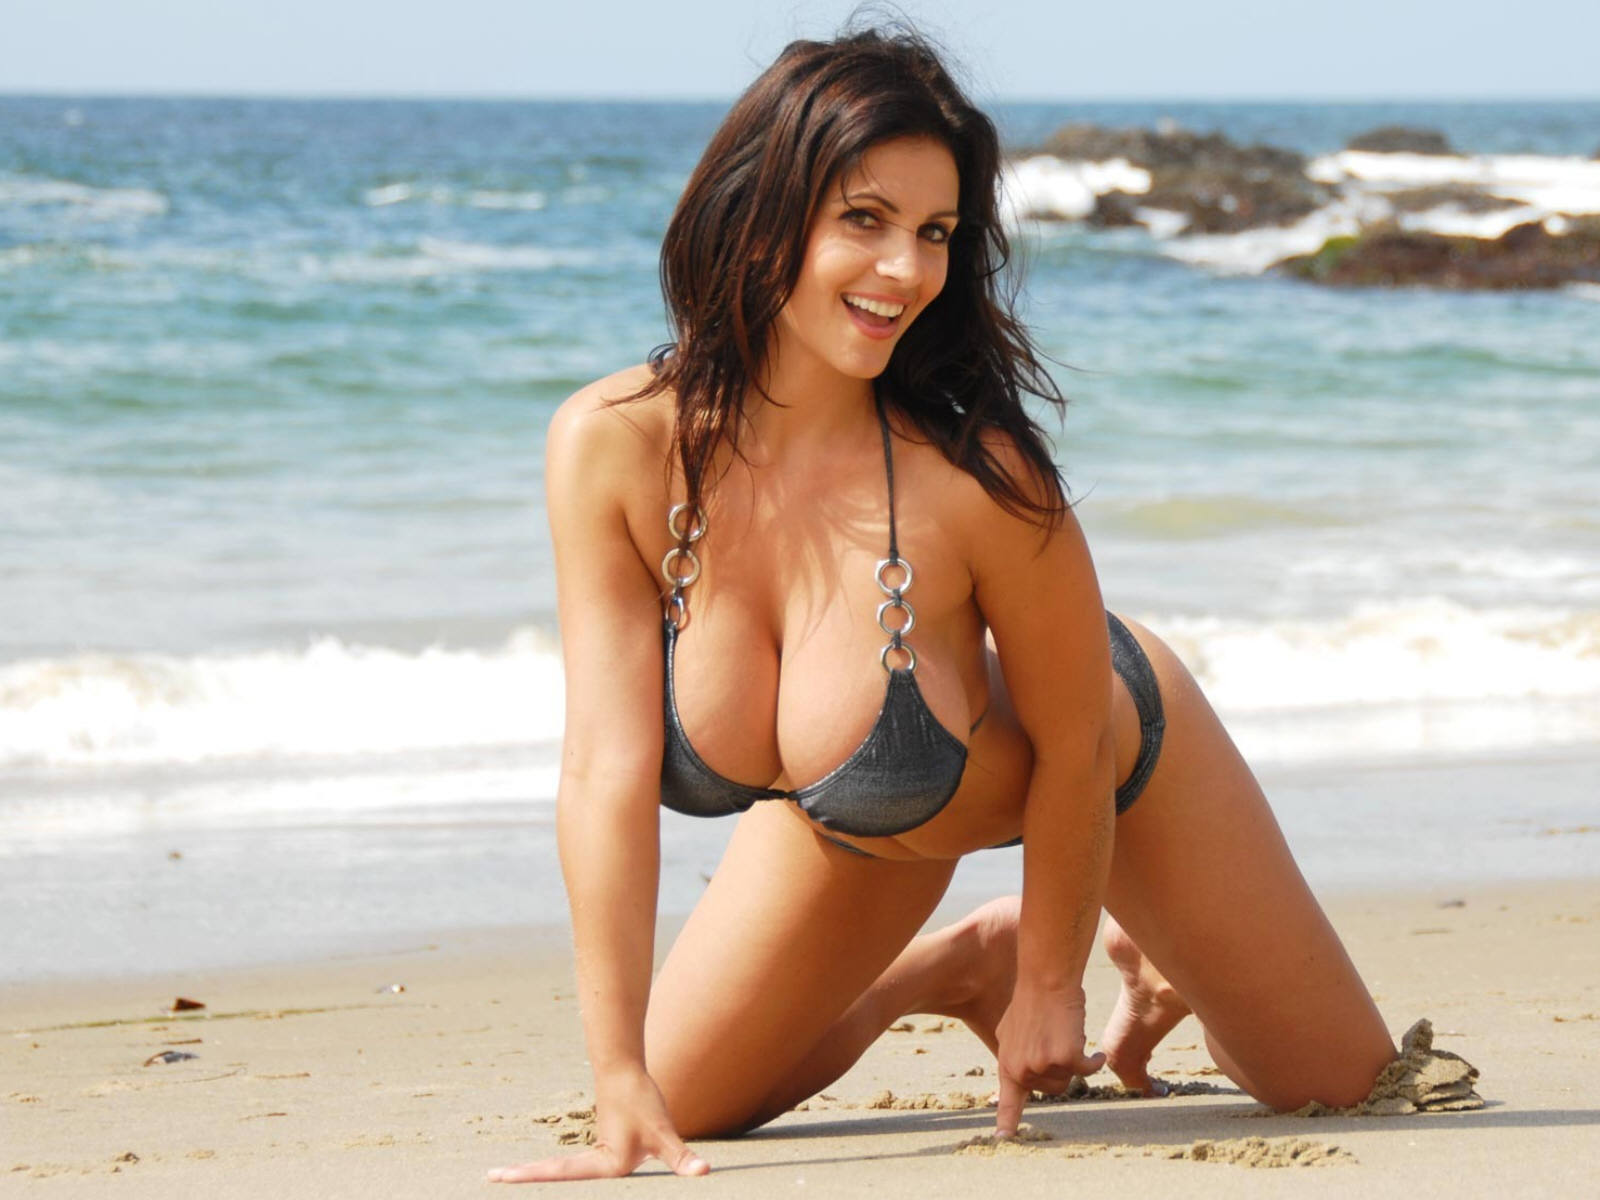 Consider, Denise milani hot bikini remarkable